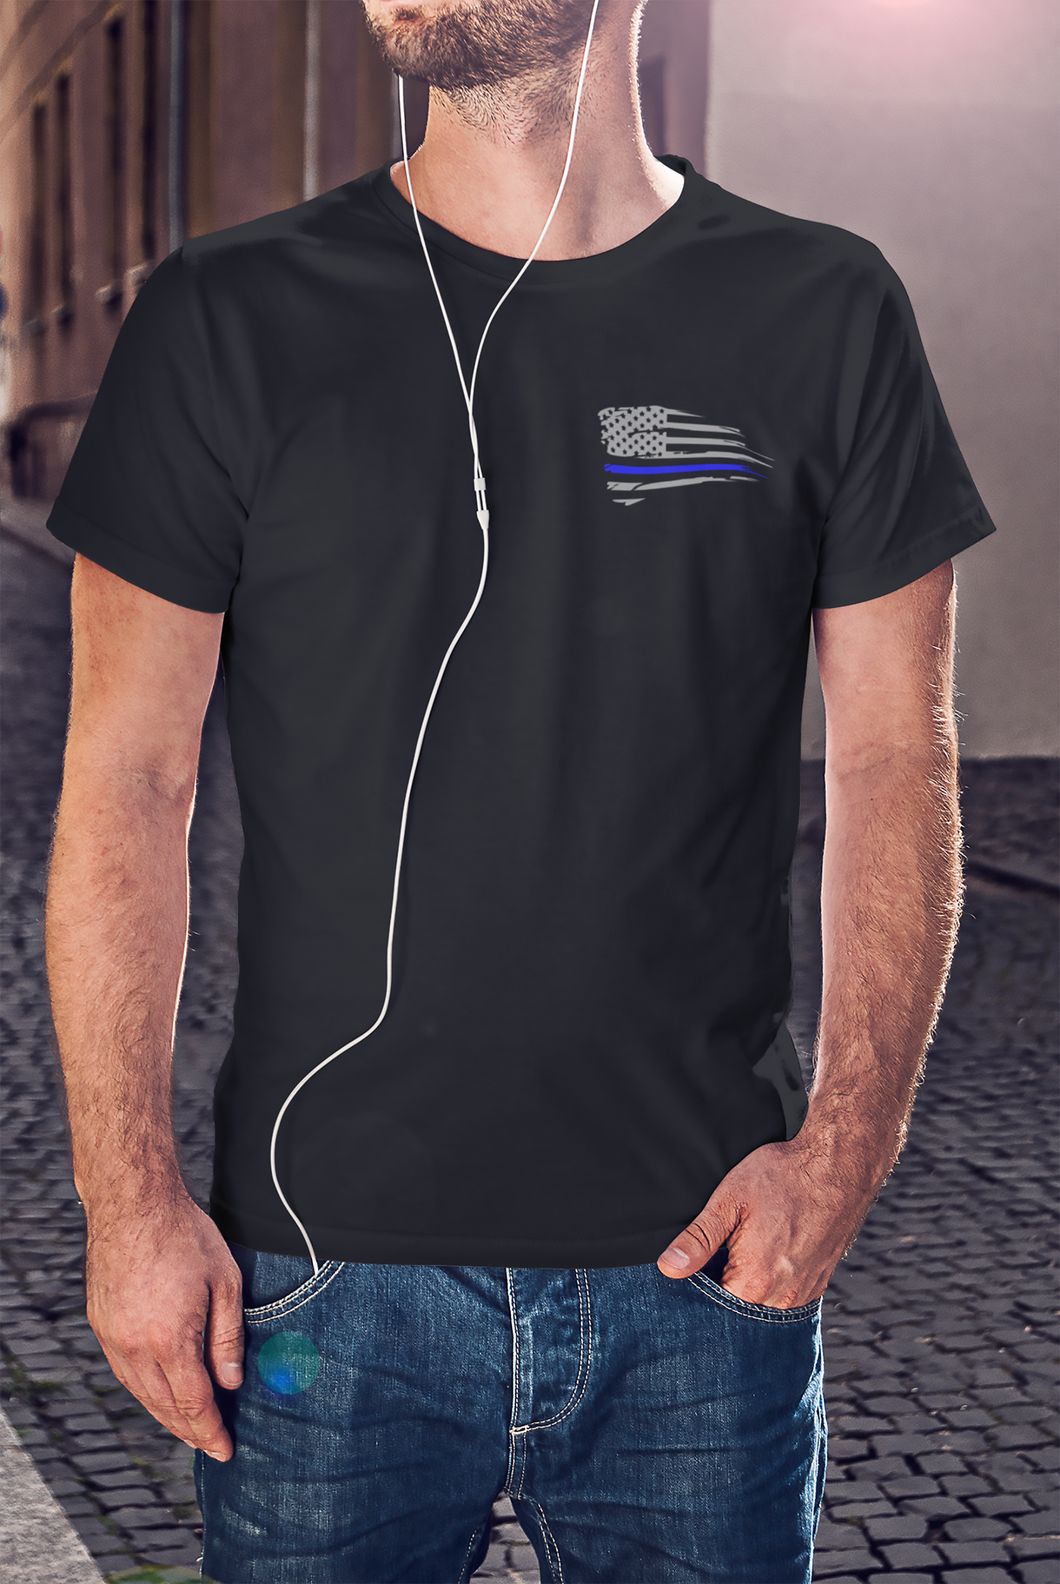 Thin Blue Line Flag LEO T-shirt,Ink That Apparel